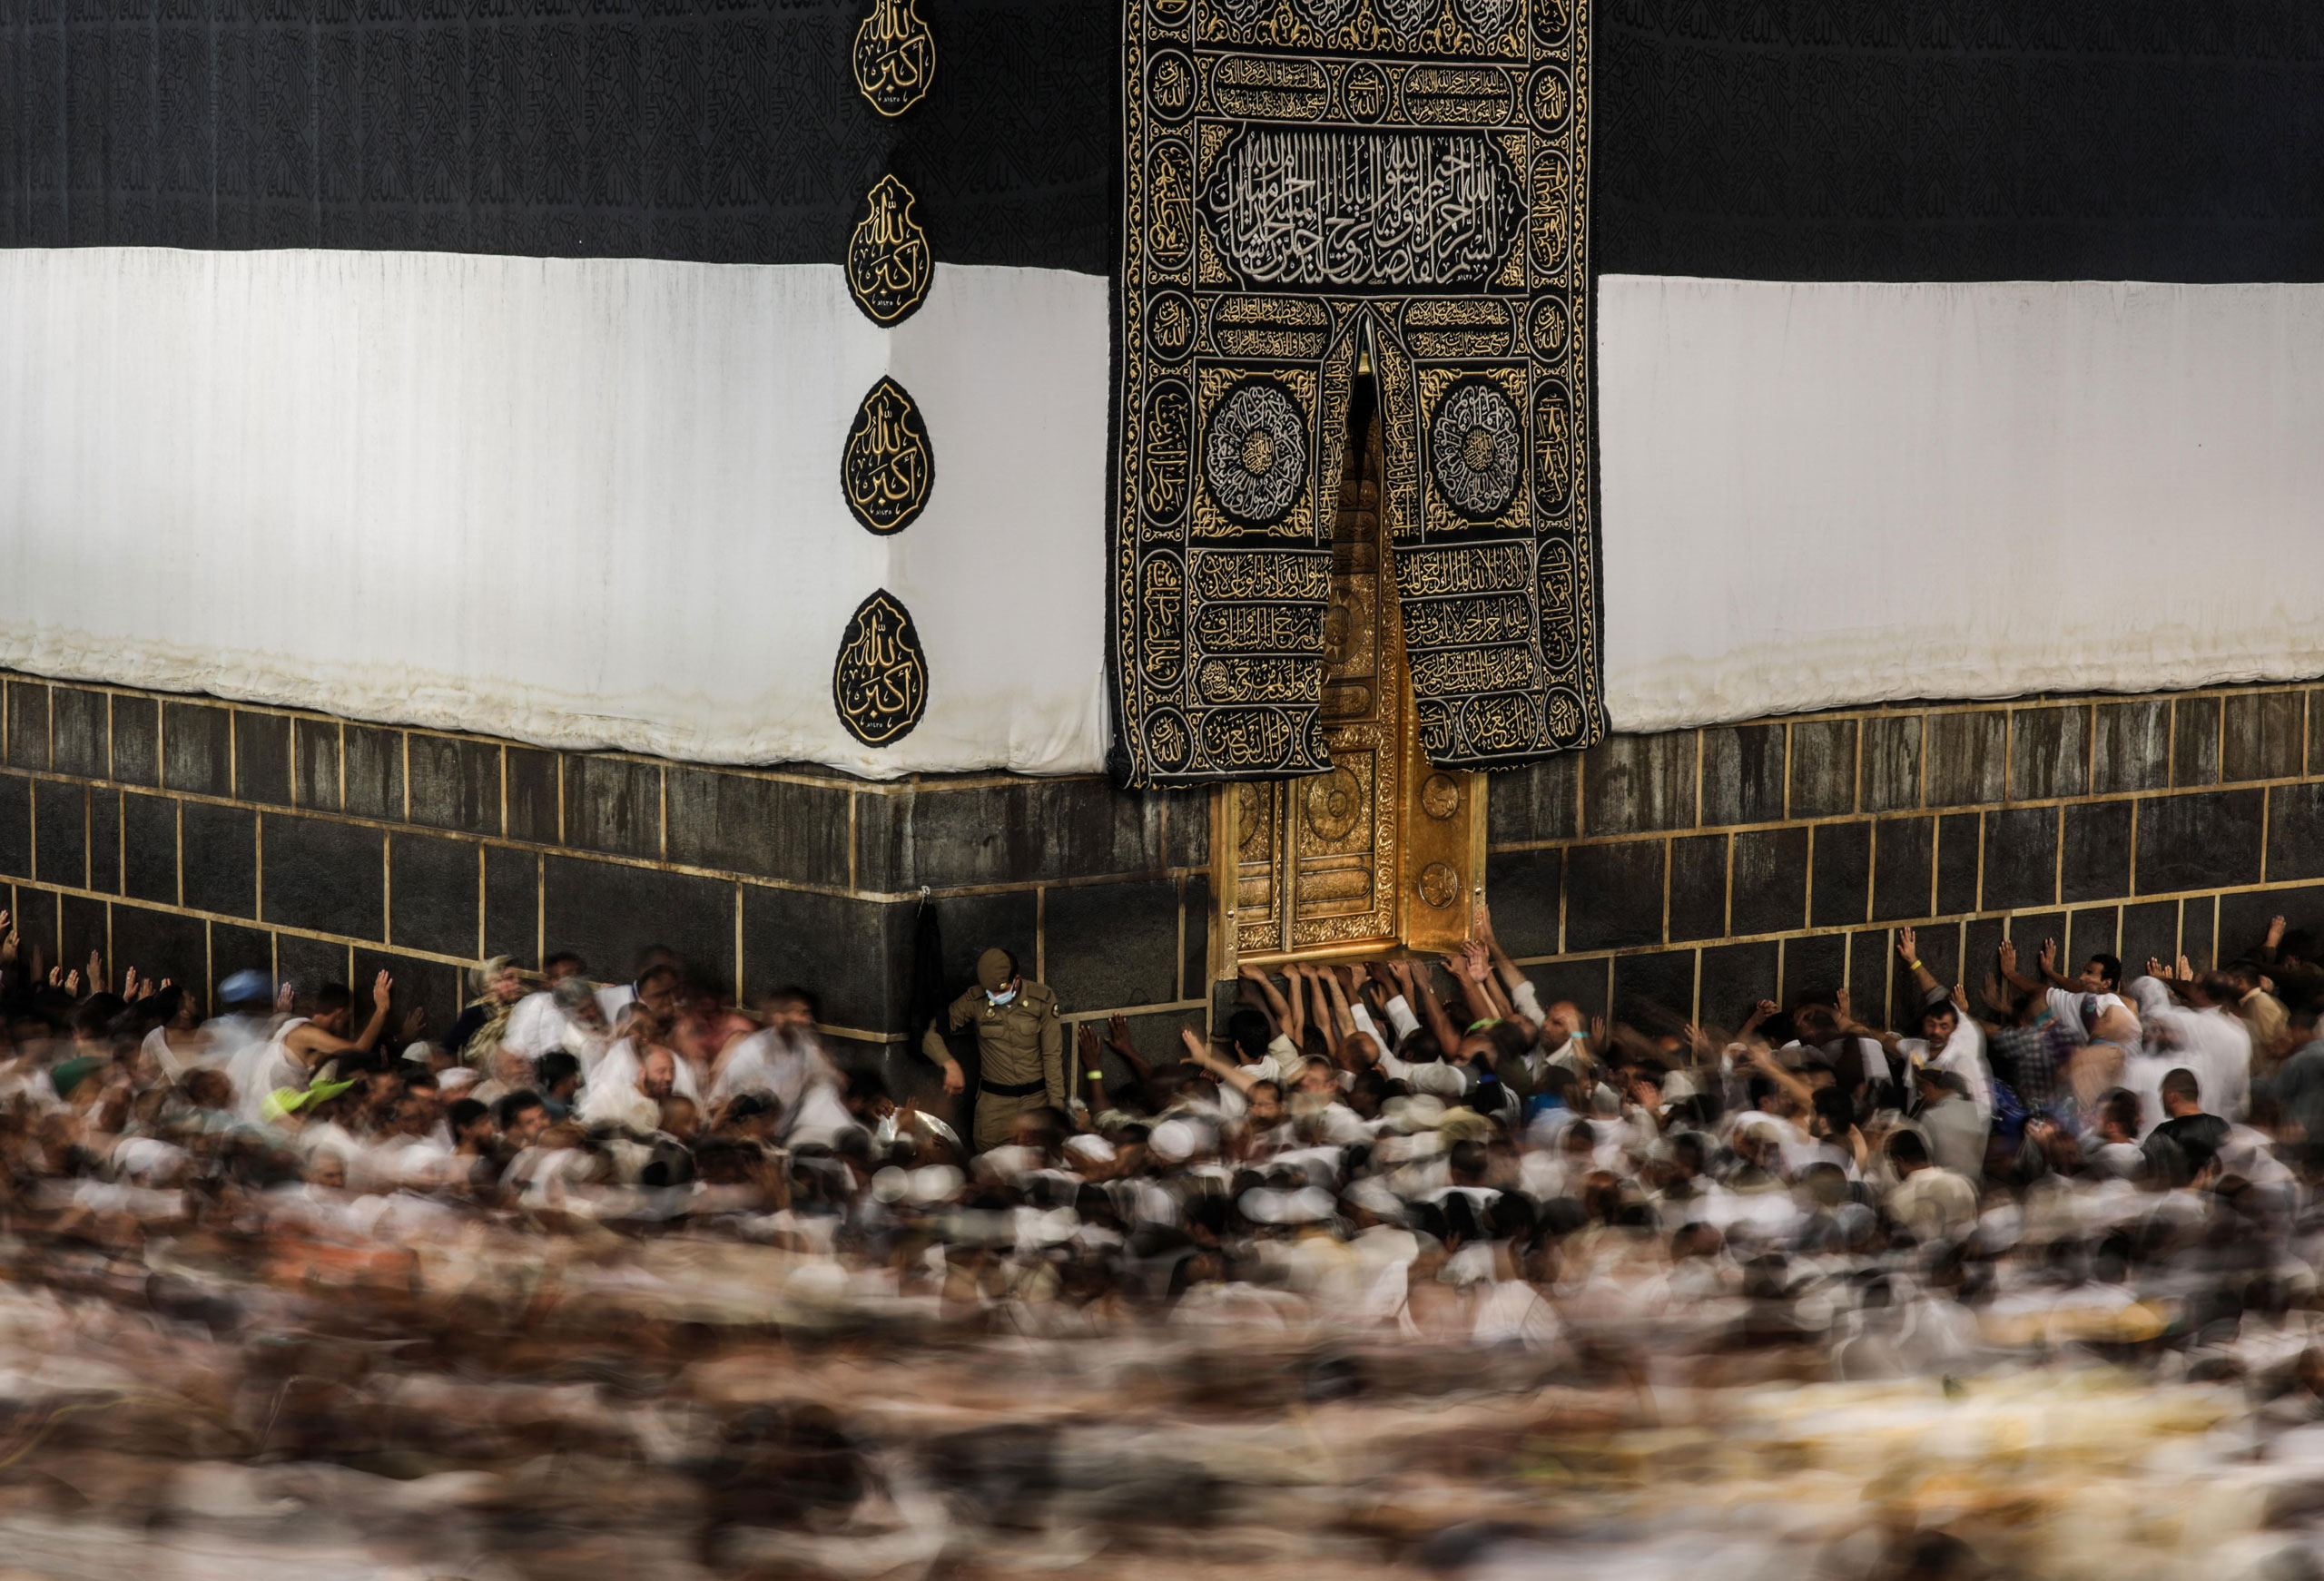 Muslim pilgrims circle the Kaaba, the cube-shaped building at the Grand Mosque in the Muslim holy city of Mecca, while performing Tawaf, an anti-clockwise movement around the Kaaba and one of the main rites of the annual pilgrimage, known as Hajj. Mecca, Saudi Arabia. Sept. 21, 2015.